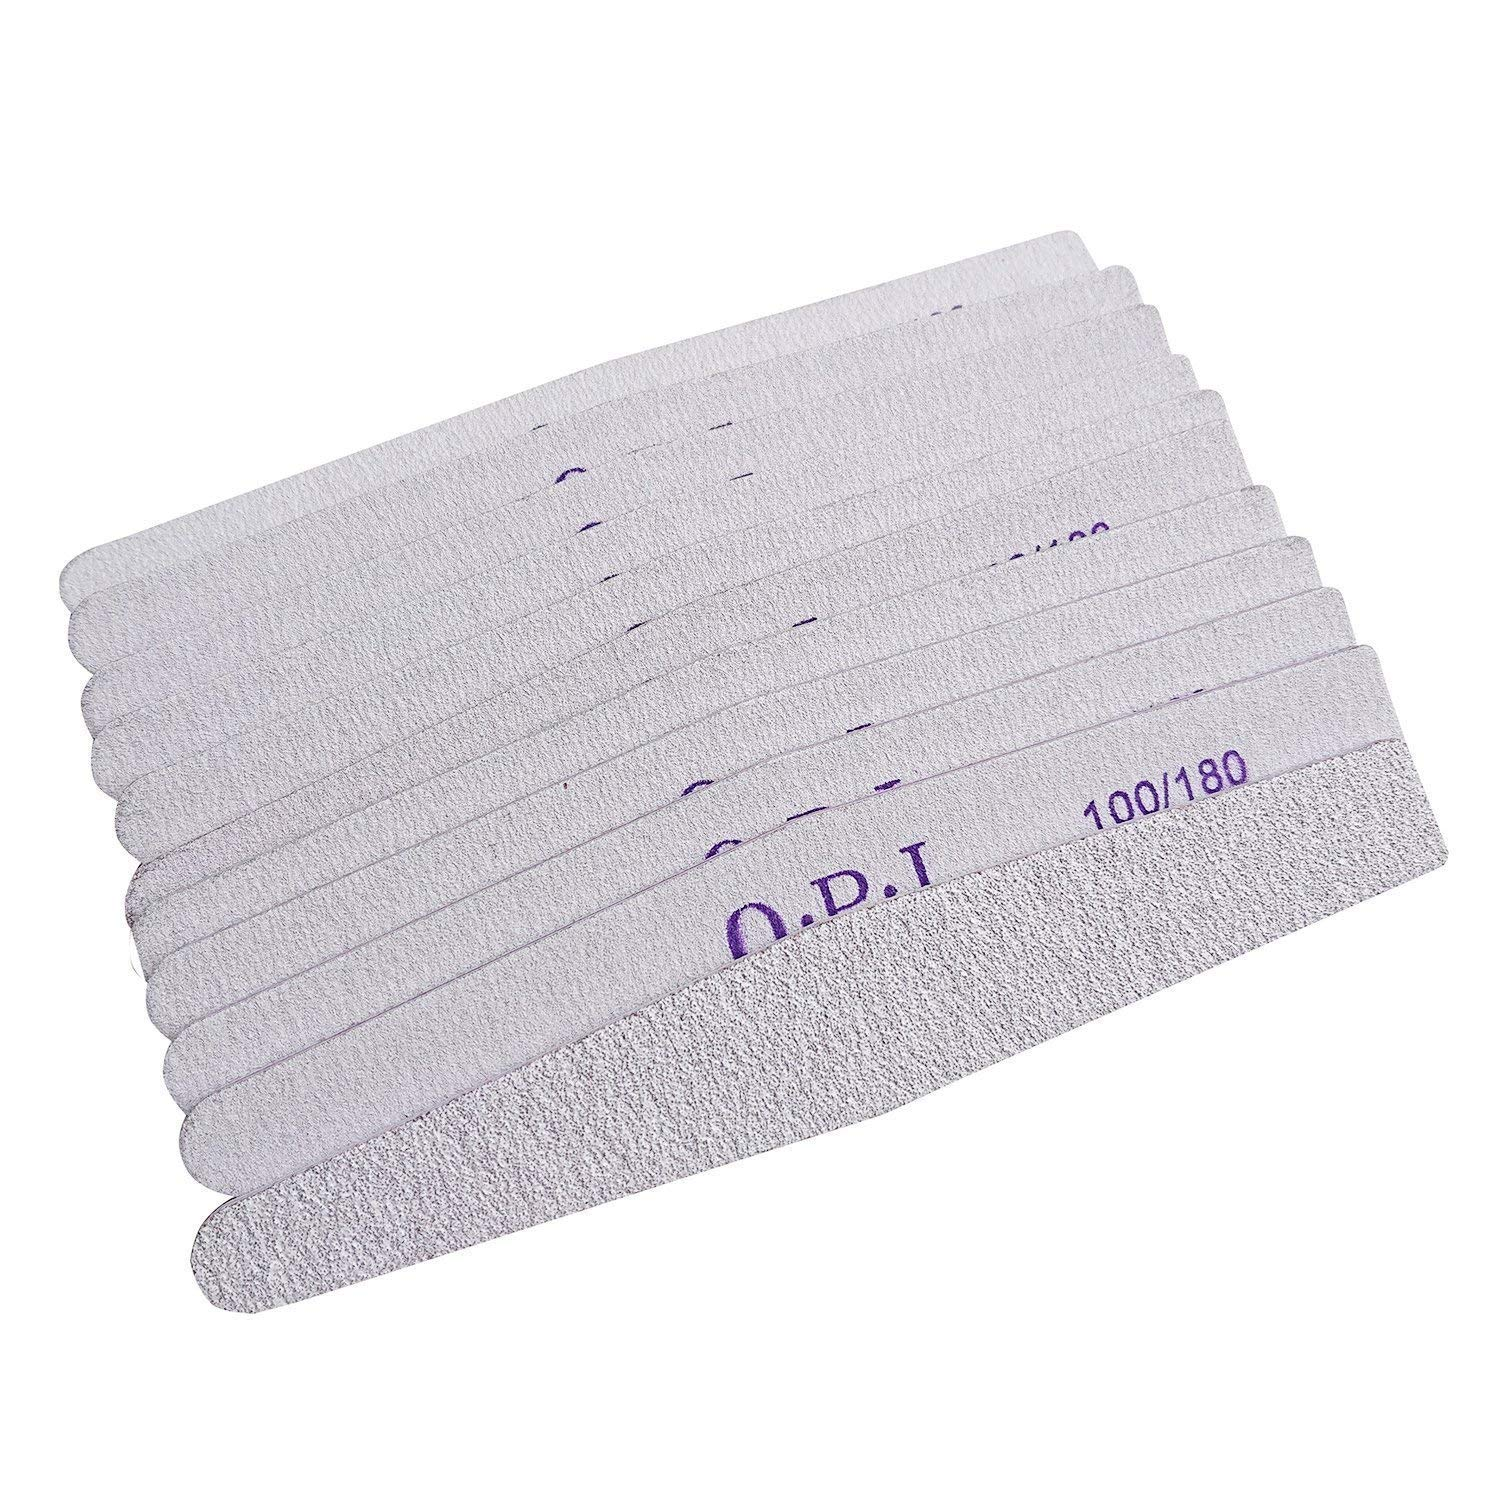 BallHull 25pcs Double Sided Nail Files Emery Board Grit gray Cosmetic Manicure Pedicure.